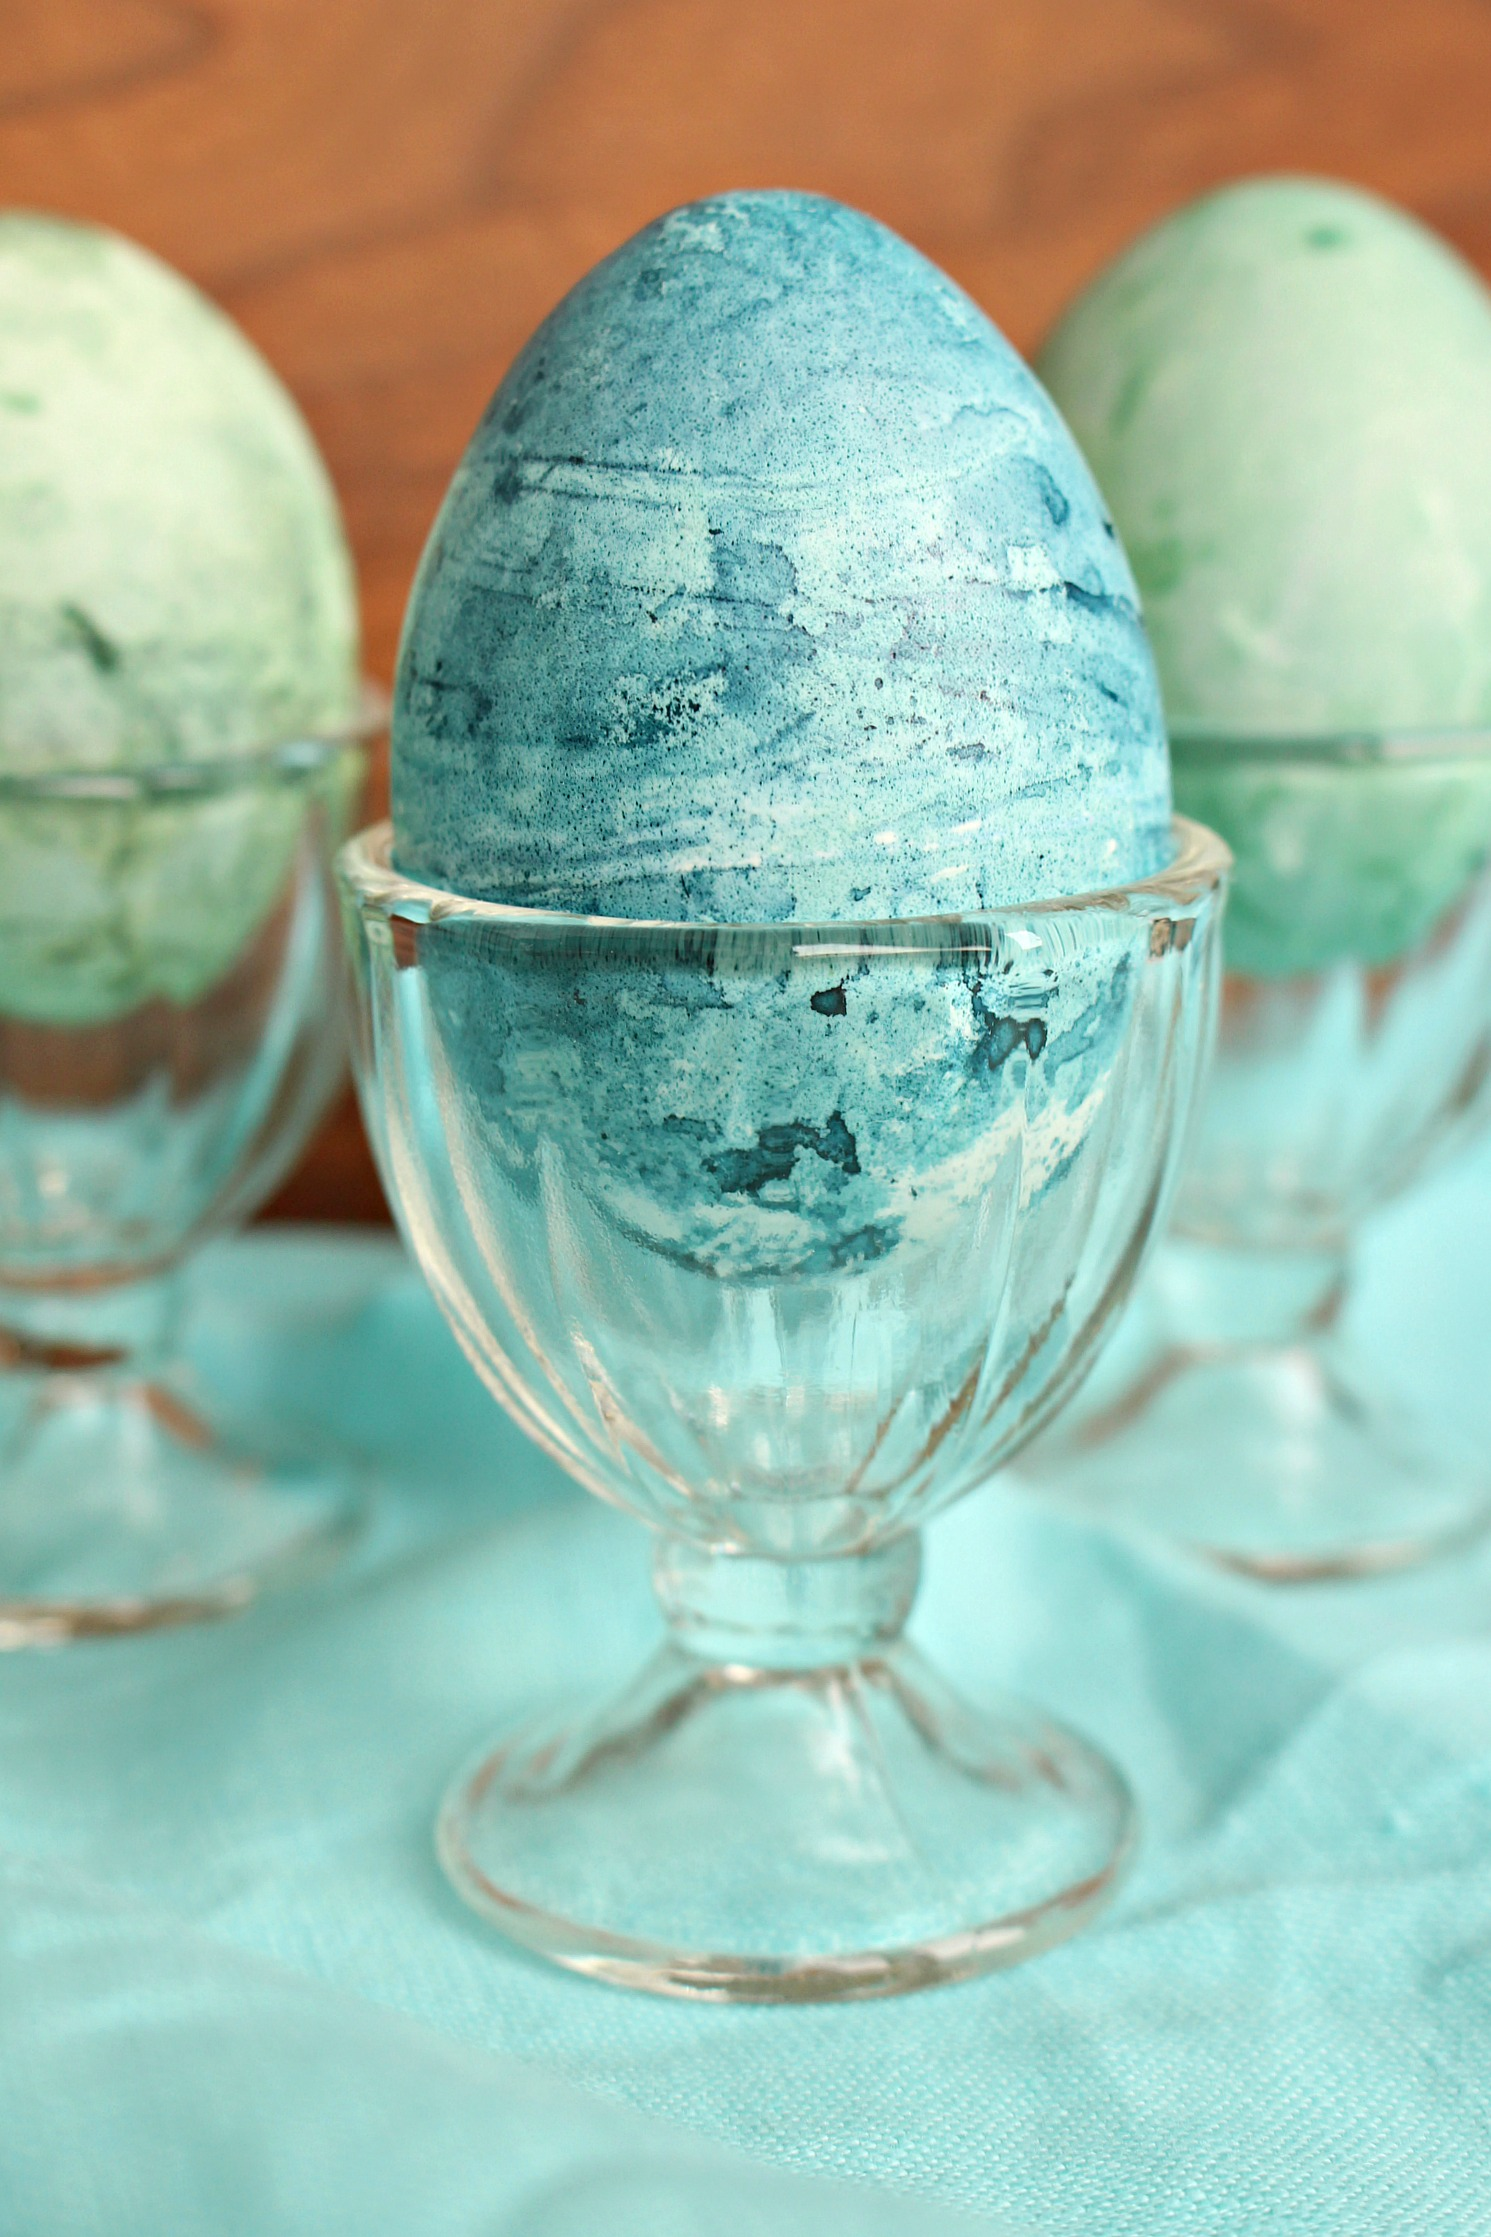 Shibori Inspired Egg DIY